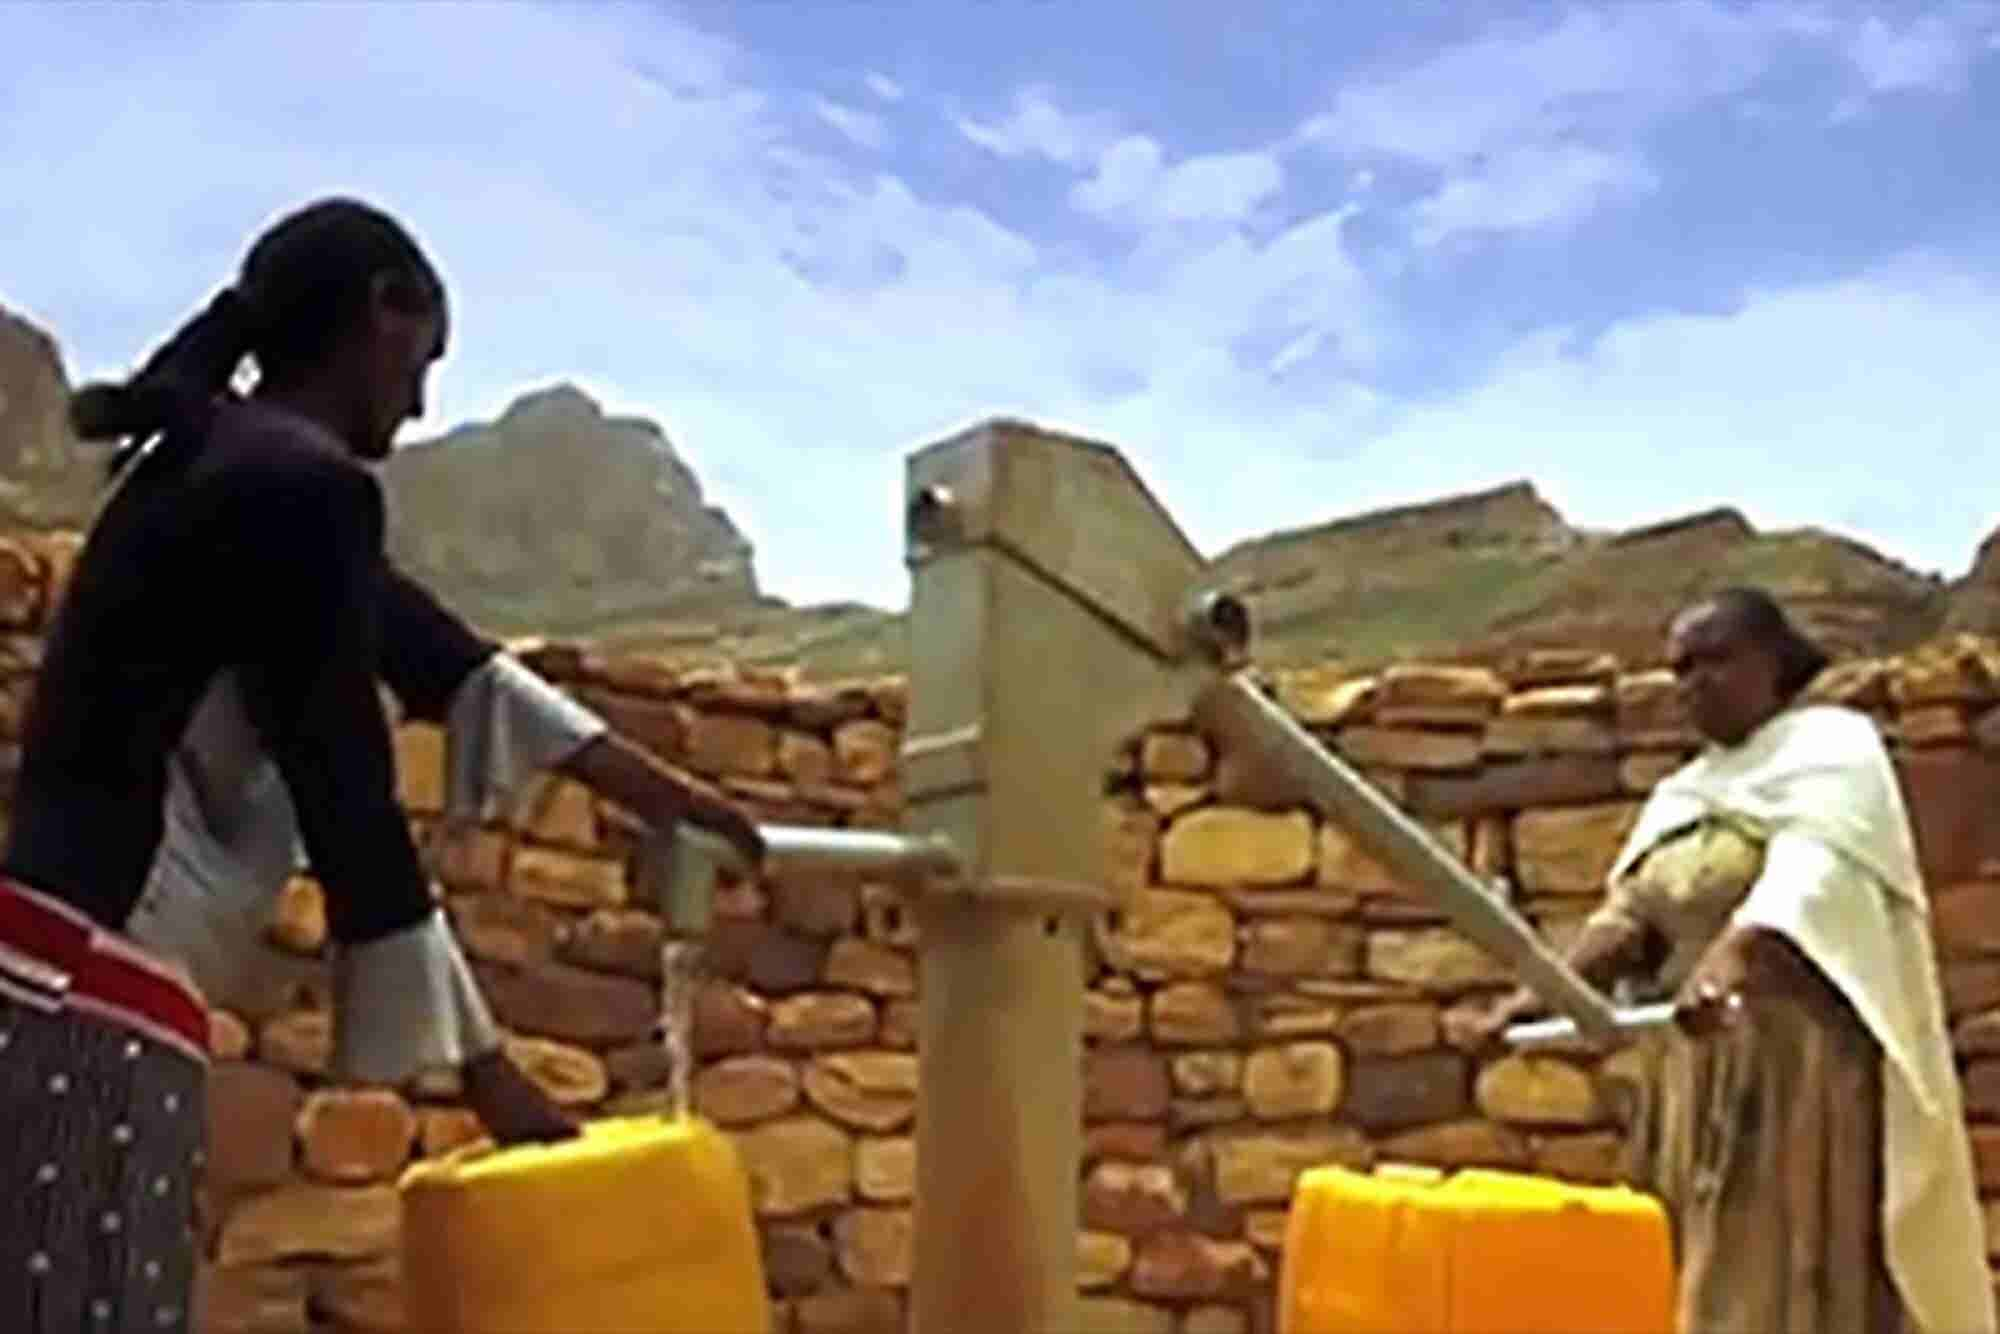 Charity Water and Its Vision for Clean Water